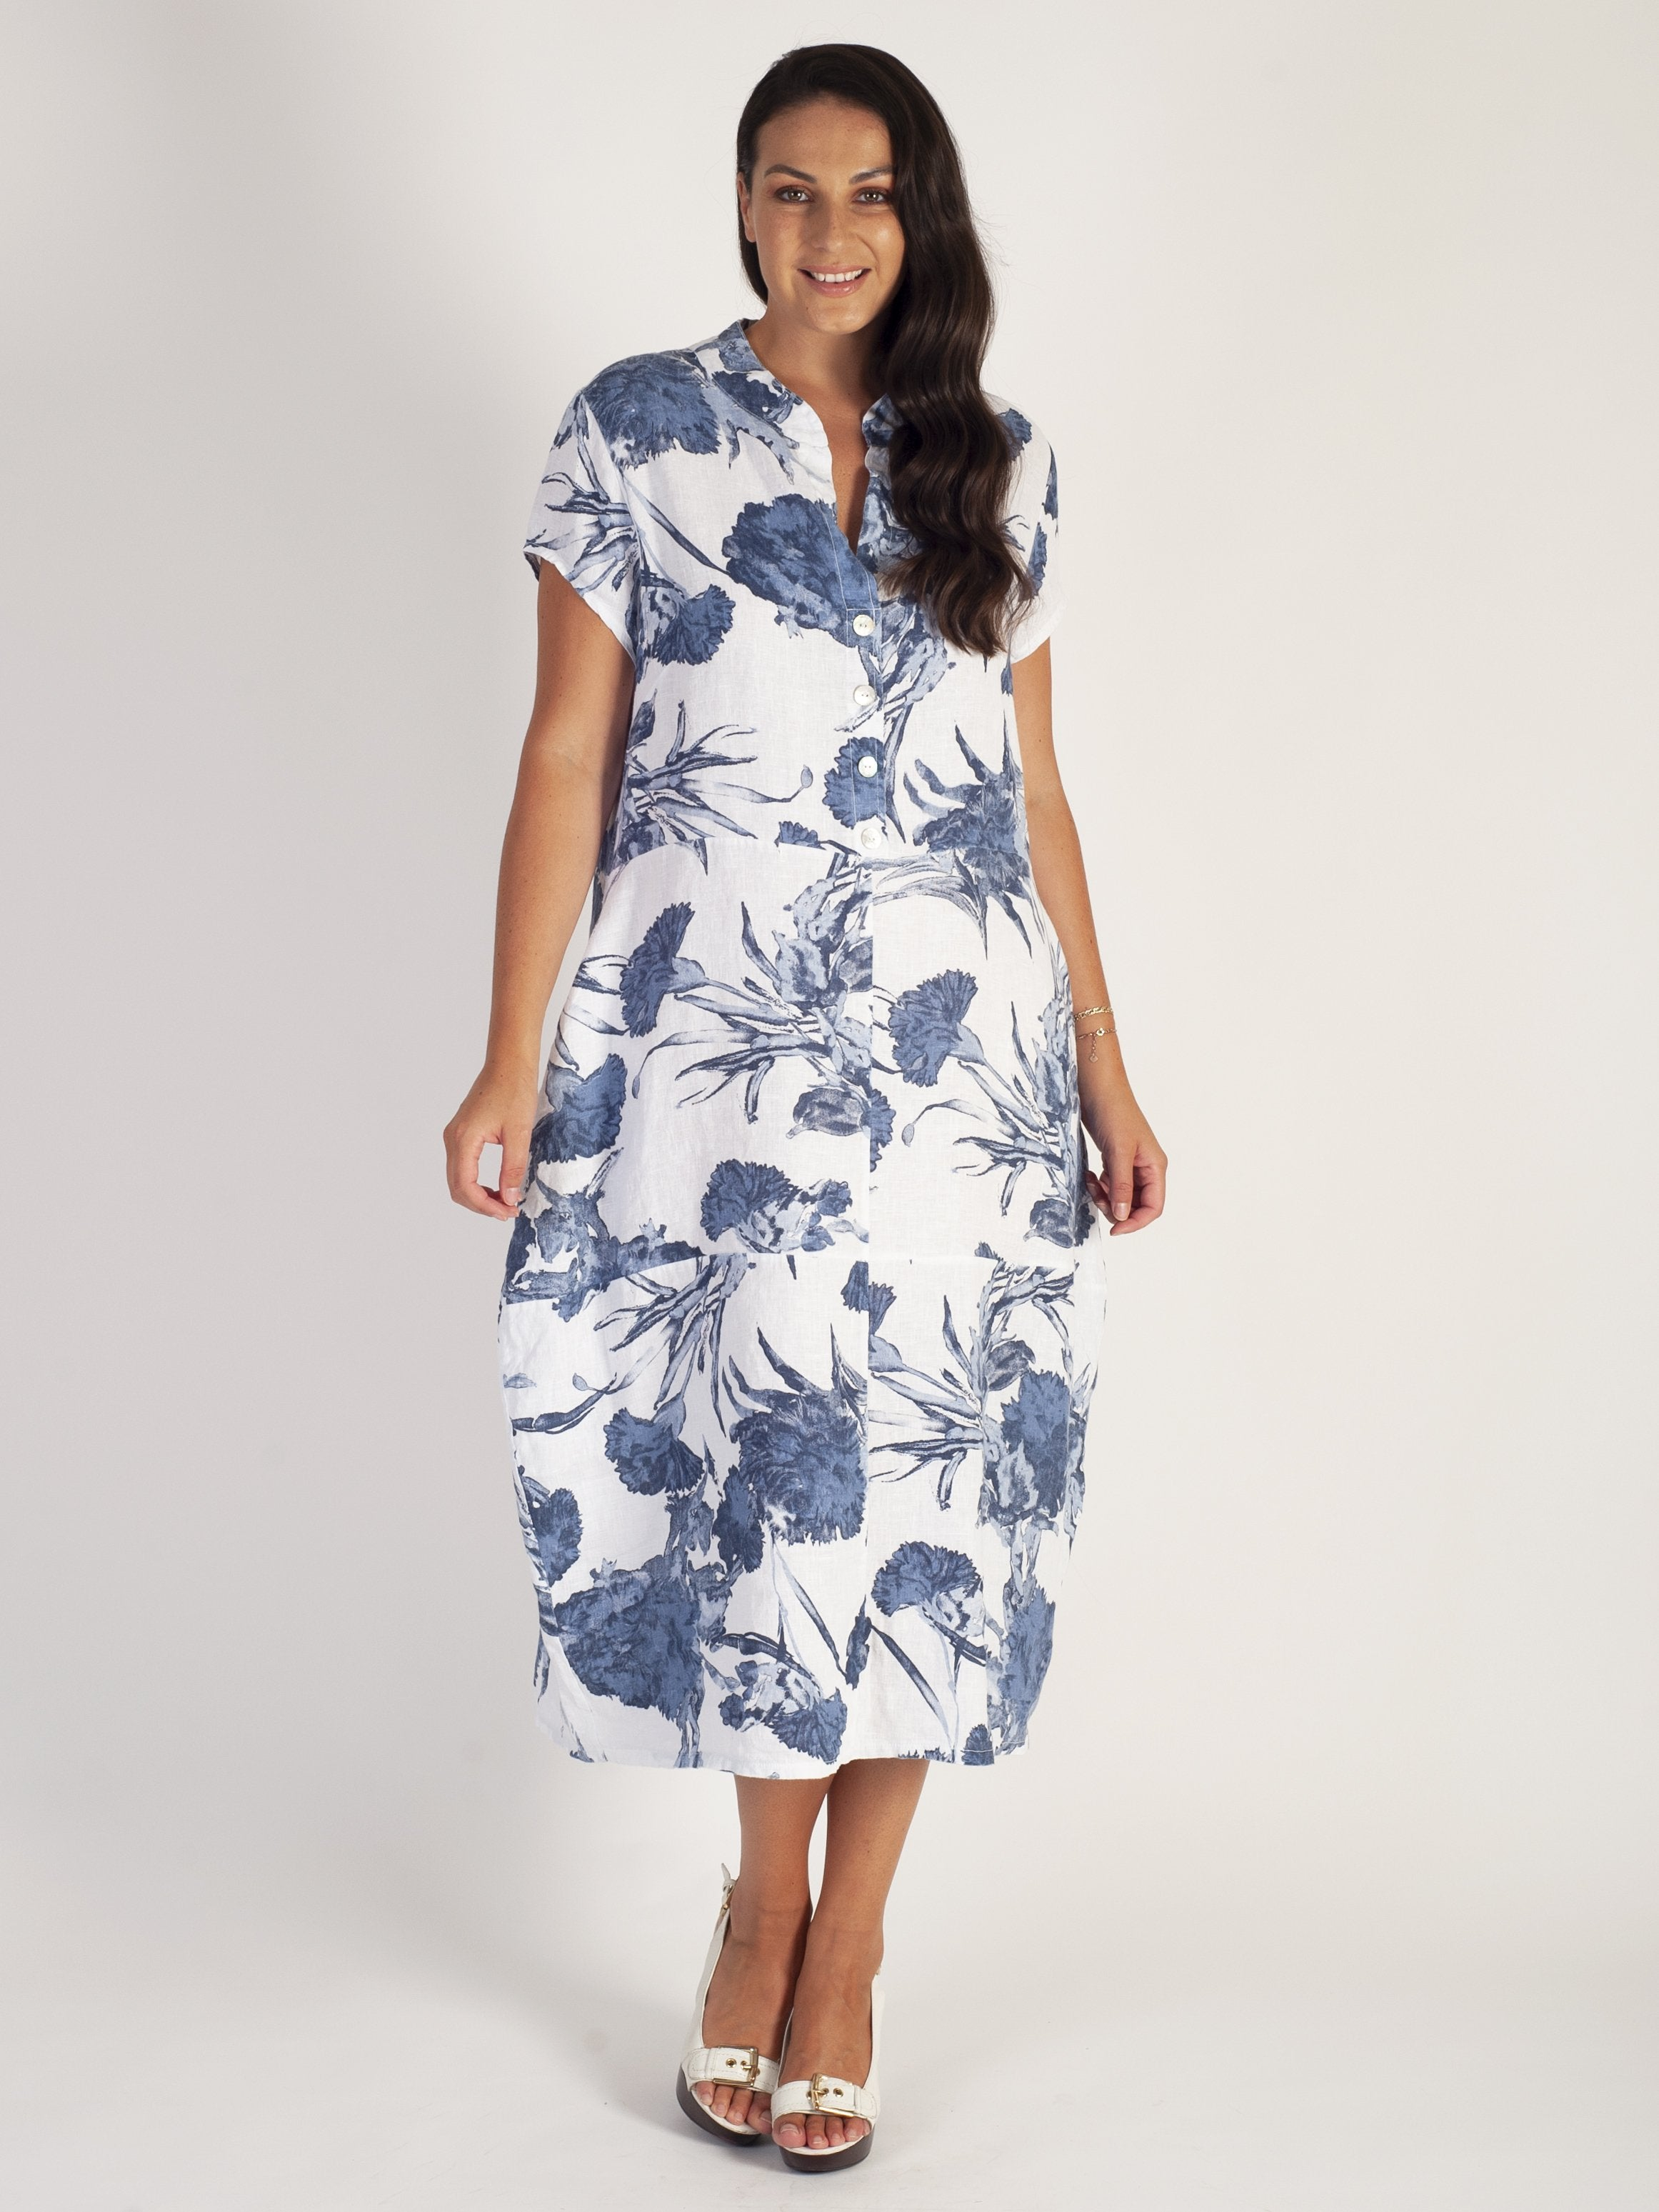 White/Denim Carnation Floral Barrel Linen Dress